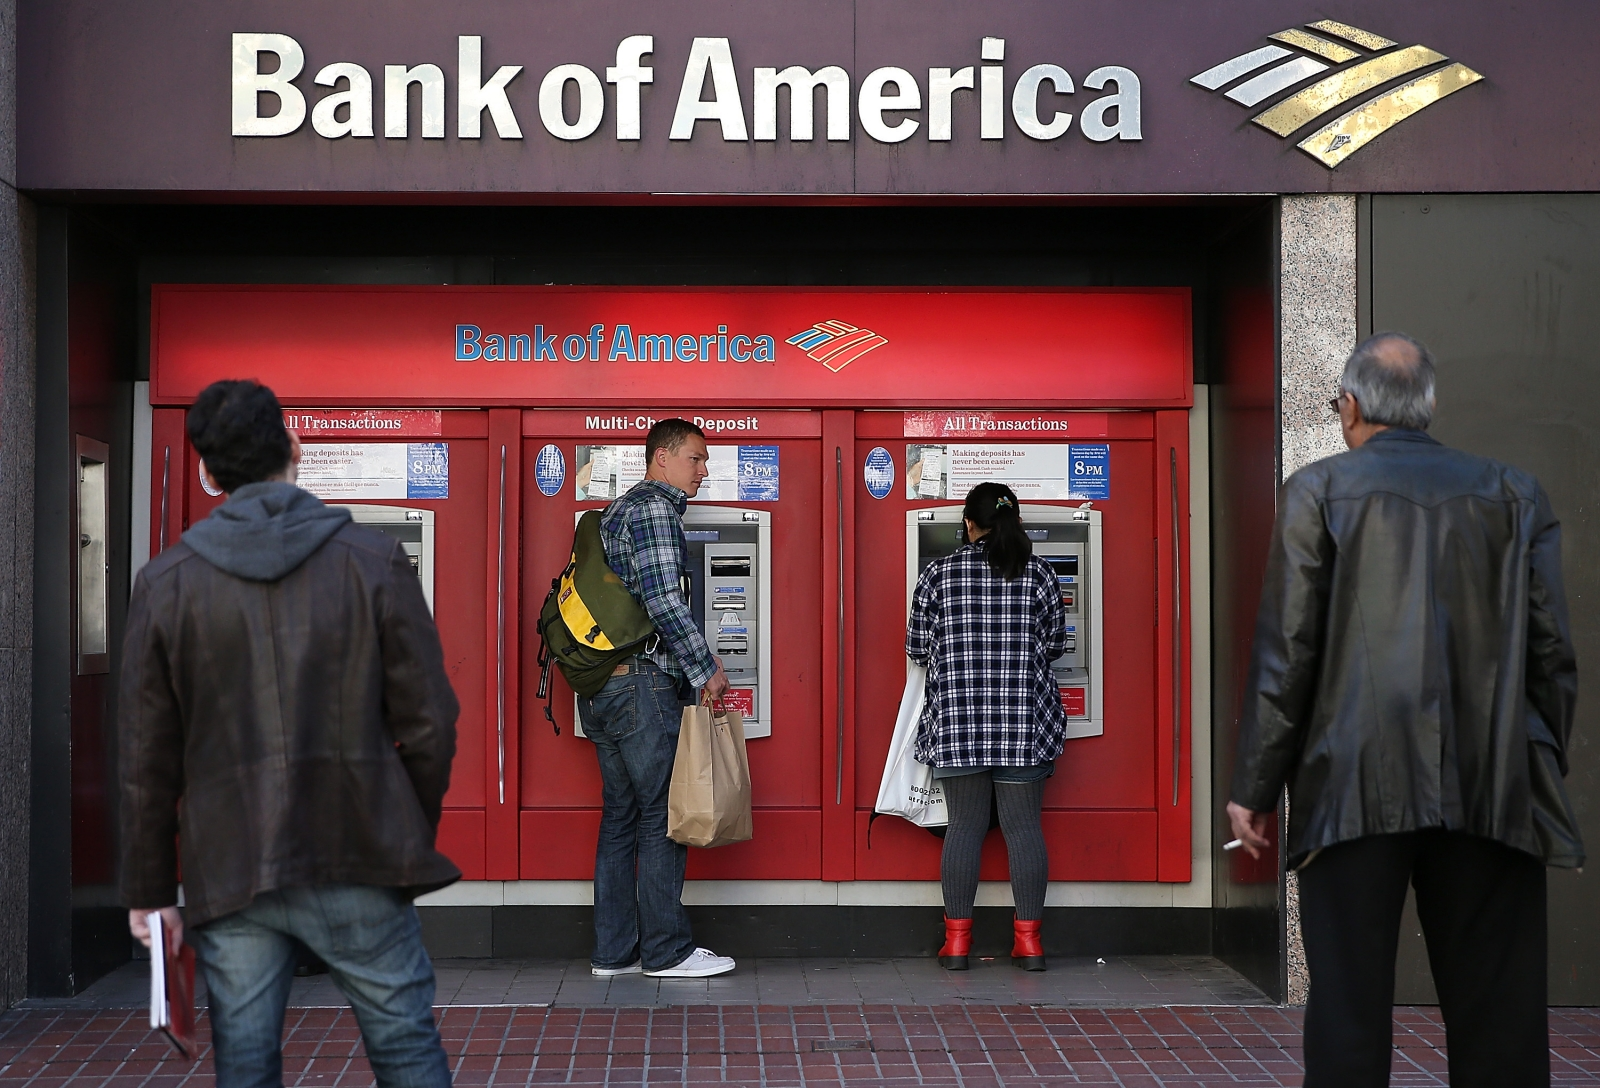 man trapped in atm pleads for rescue by slipping notes